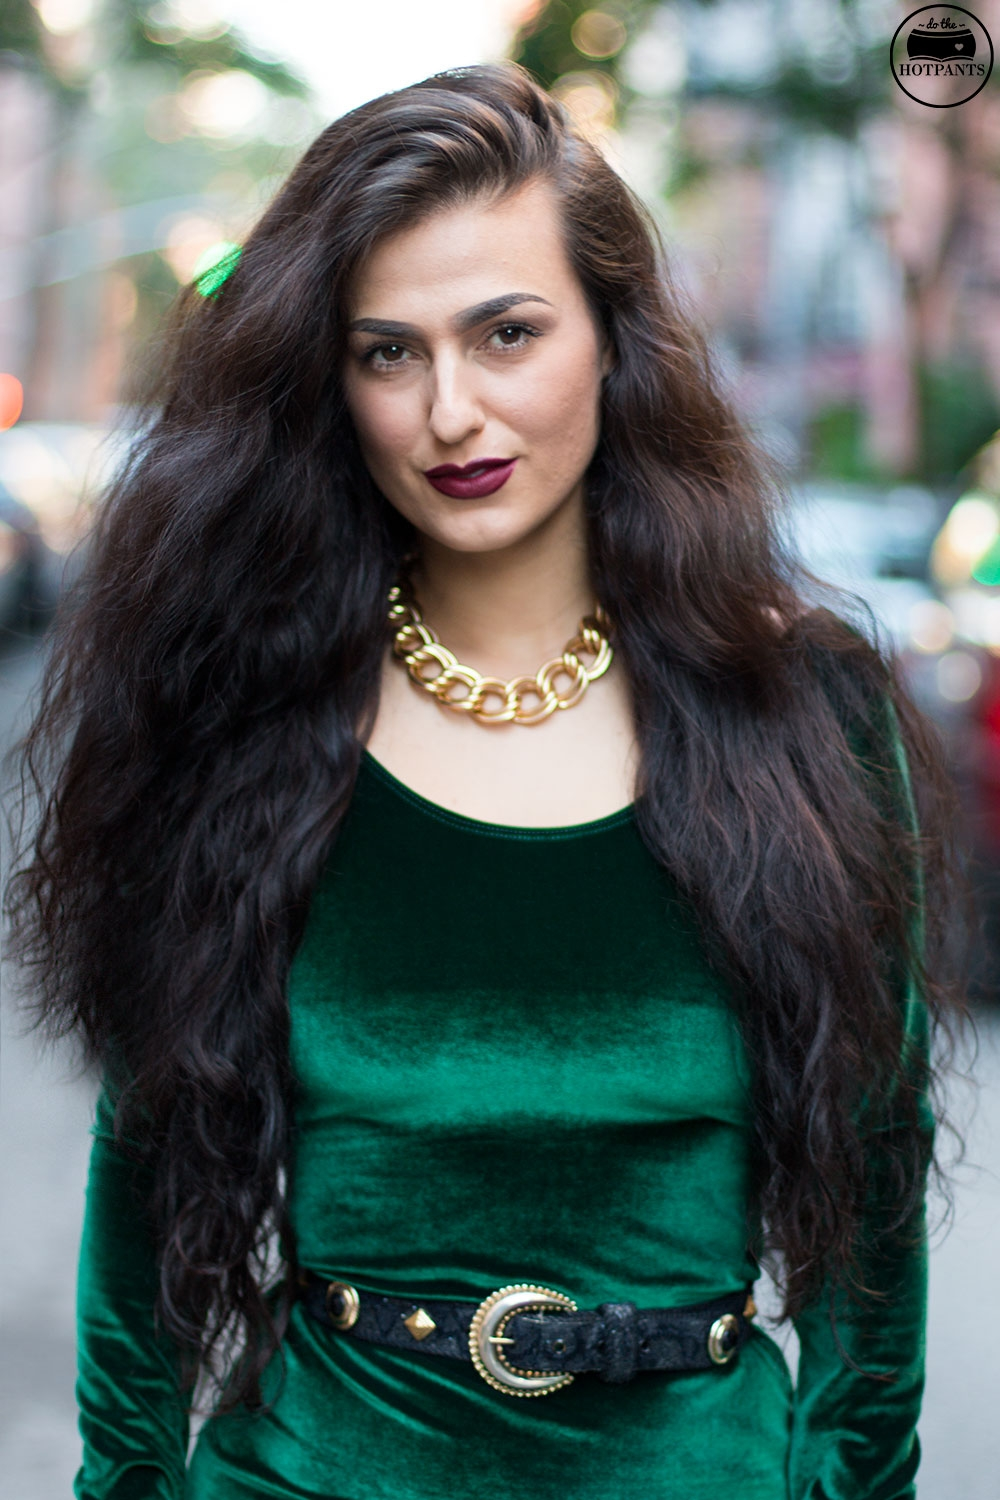 Do The Hotpants Dana Suchow Green Velvet Bodycon Dress Minidress Curvy Woman Long Hairstyle Wavy Hair IMG_3322